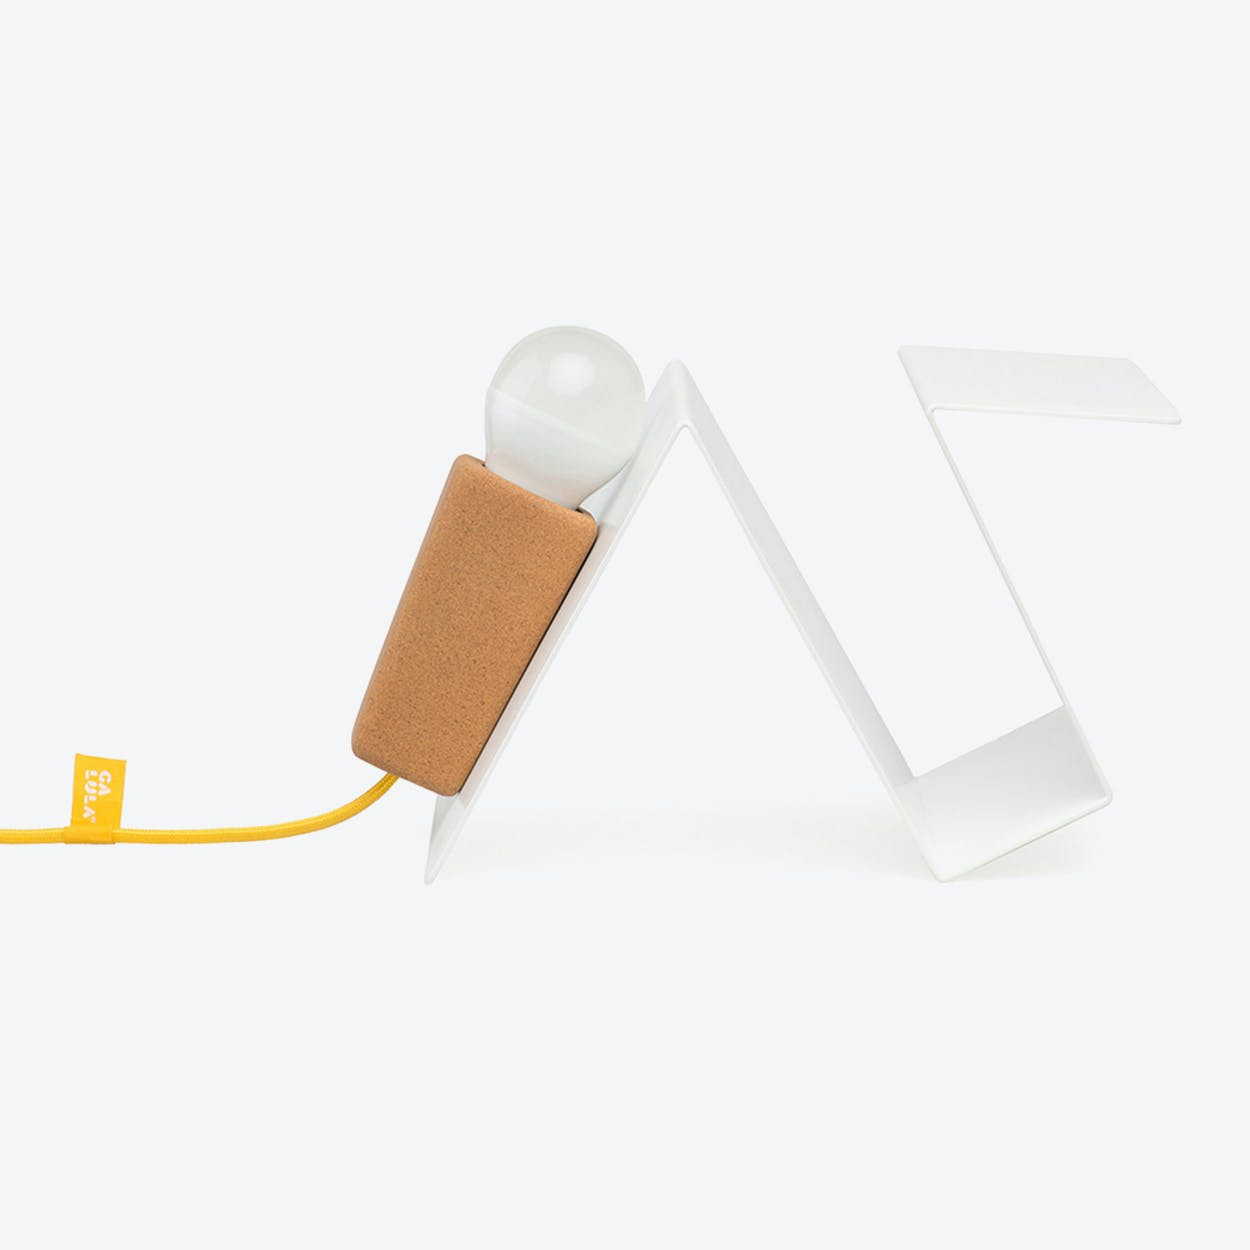 Glint Desk Lamp #3 in White Base & Yellow Wire